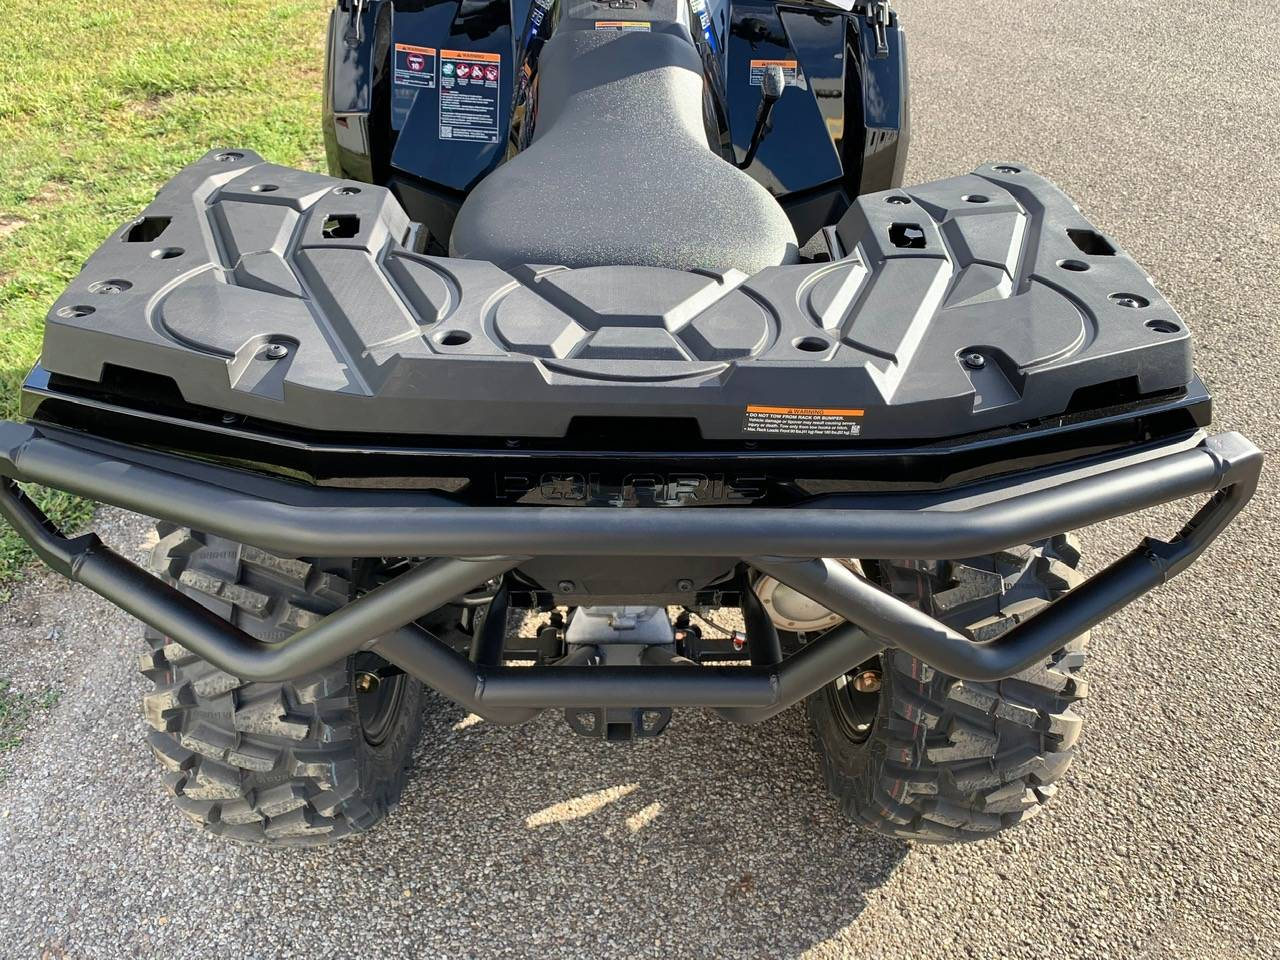 2021 Polaris Sportsman 570 Trail in Brilliant, Ohio - Photo 22